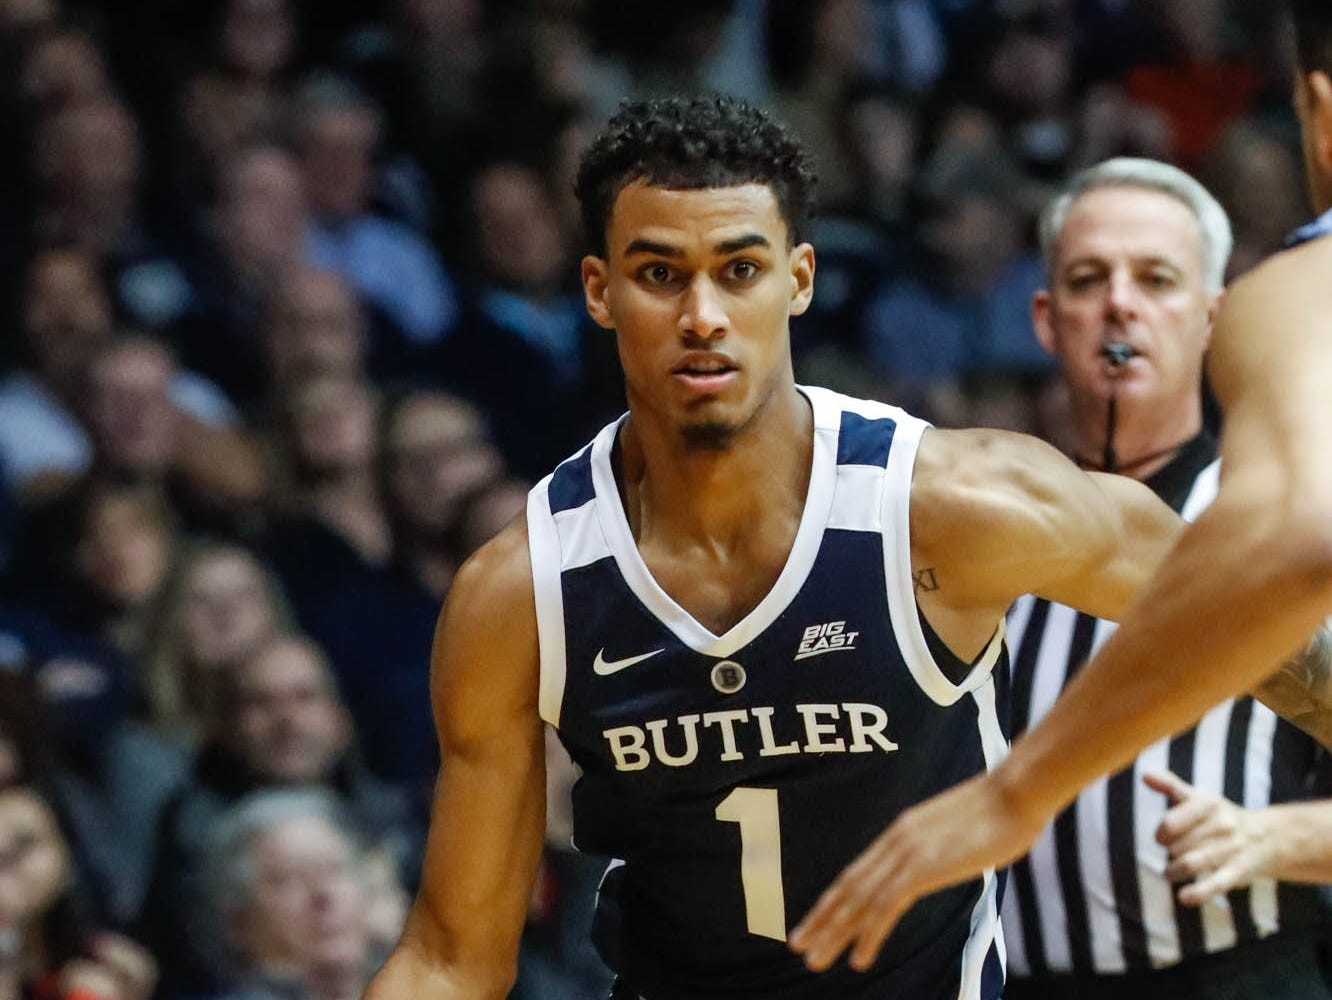 Butler University's forward Jordan Tucker (1), drives to the hoop, during a game between Butler University and UC Irvine, at Hinkle Fieldhouse on Friday, Dec. 21, 2018.